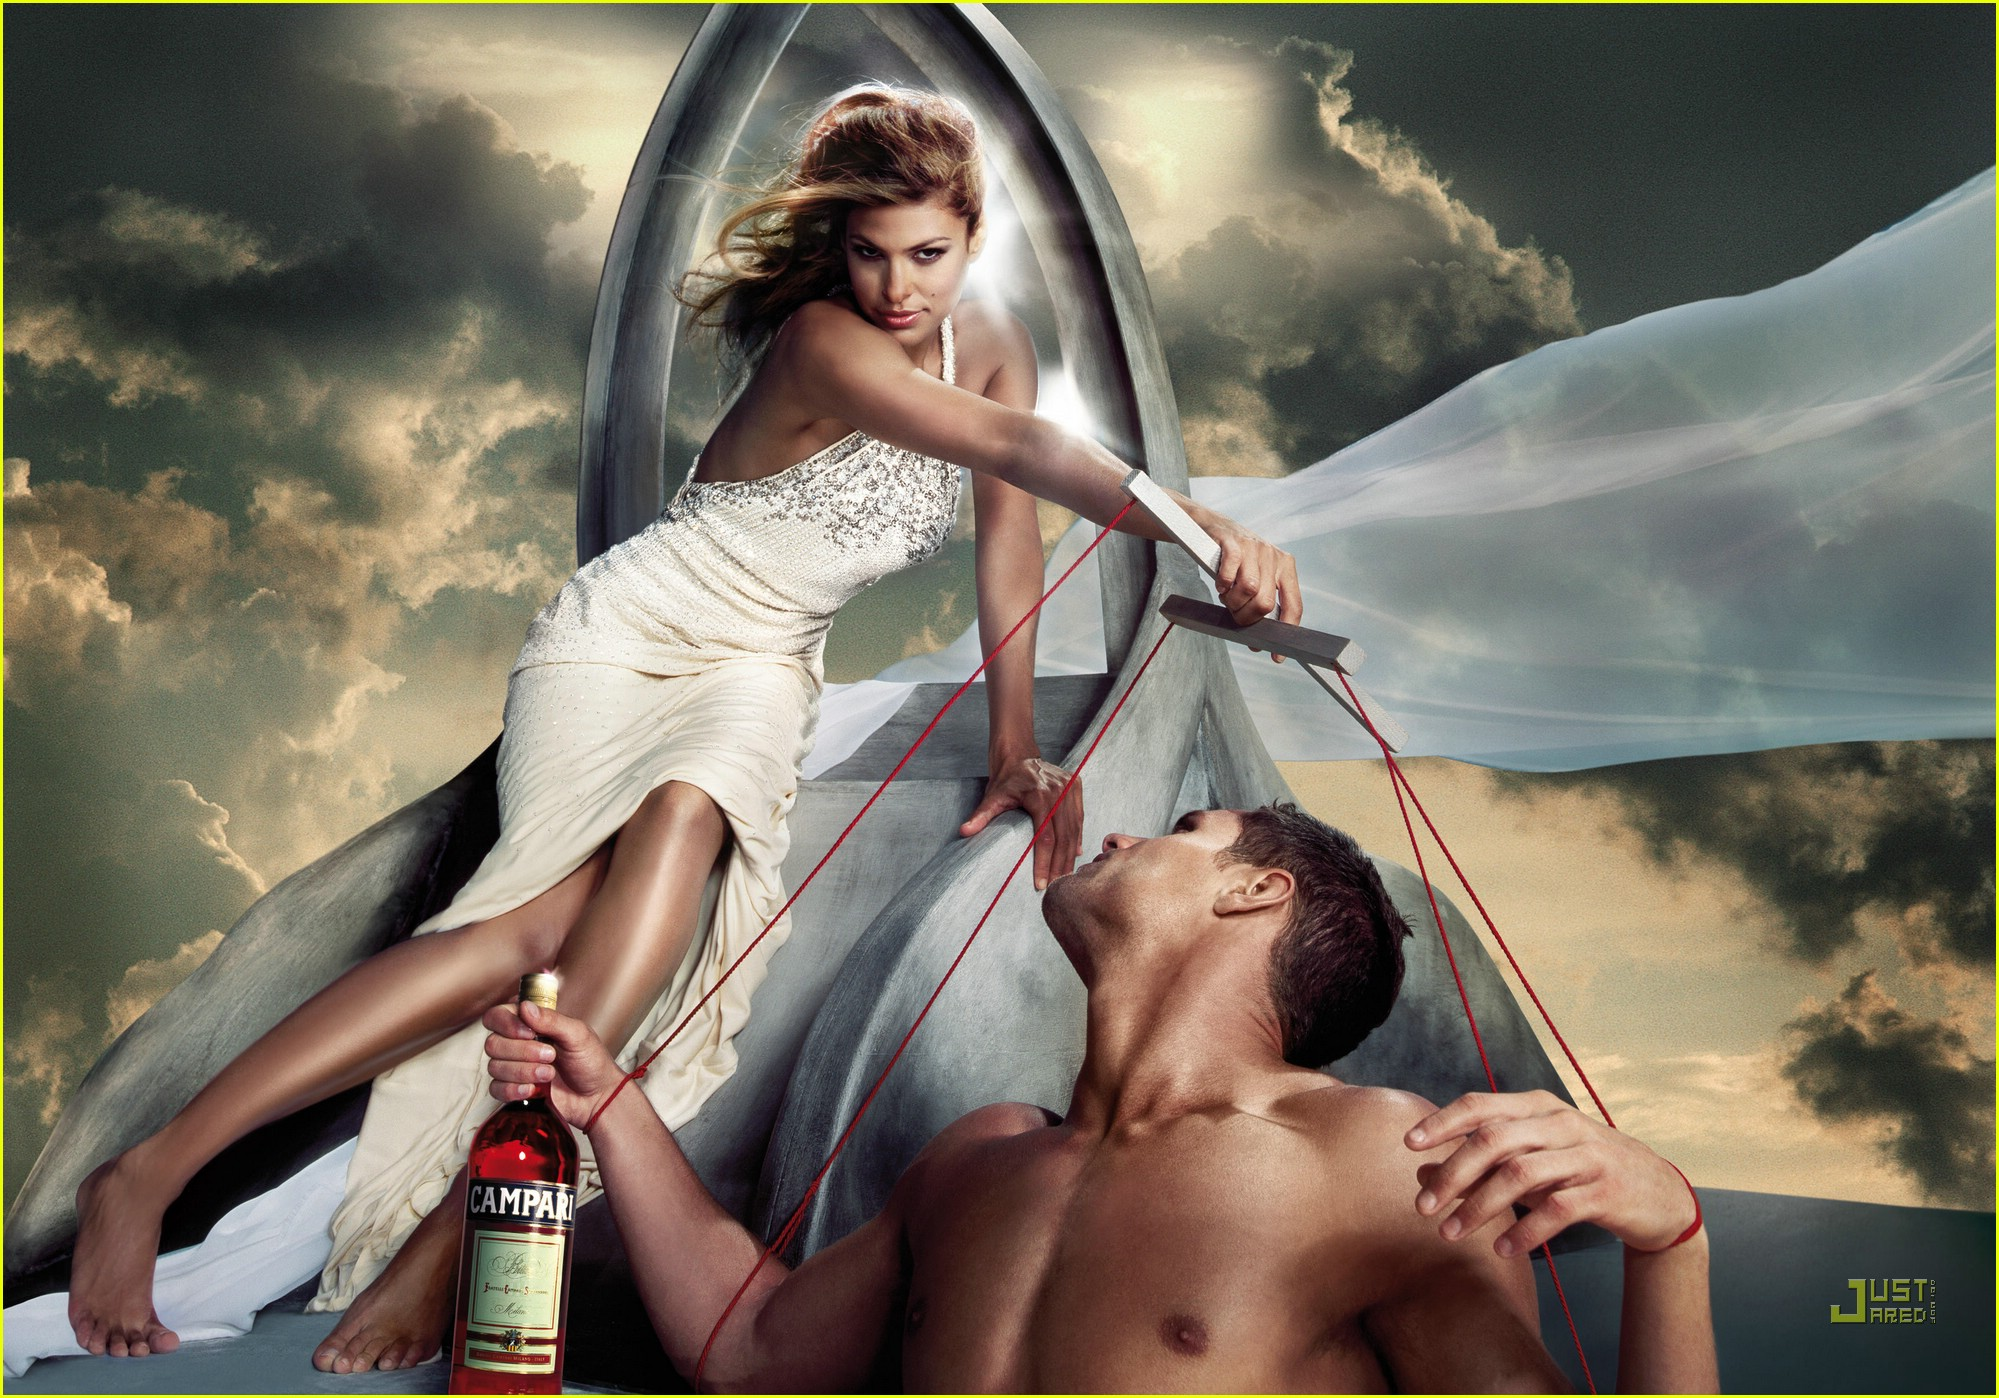 Eva Mendes Campari Calender Wallpaper